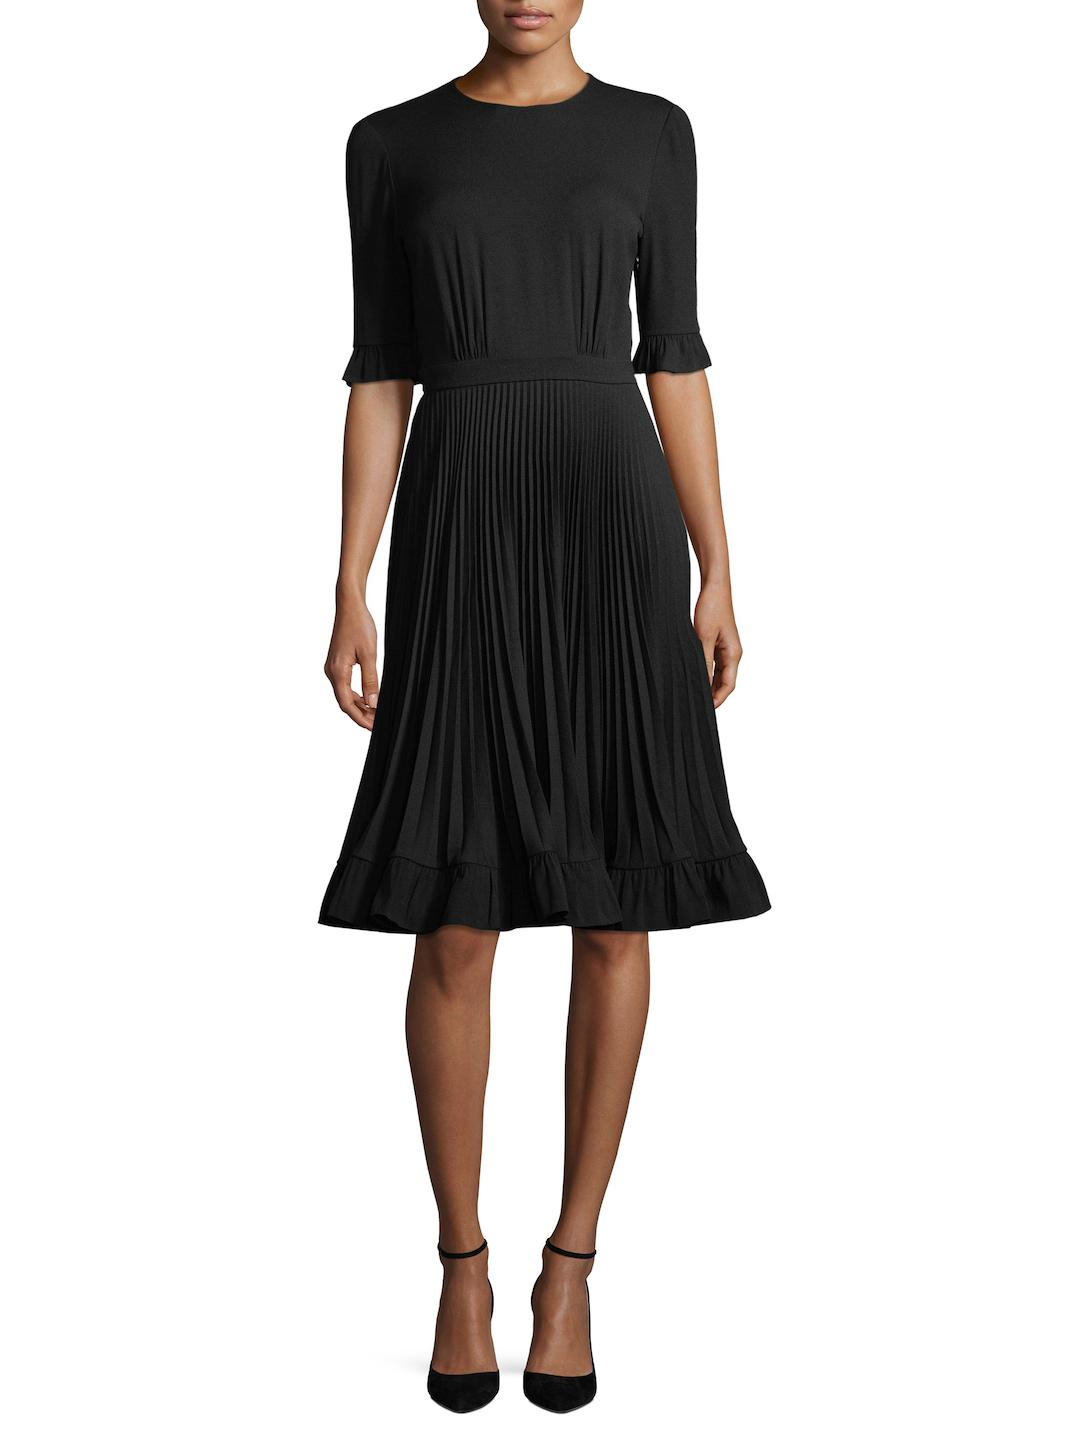 With Paypal Cheap Online pleated flared dress - Black Prada Discount From China Free Shipping Cheap Quality Footlocker For Sale X20RGDq